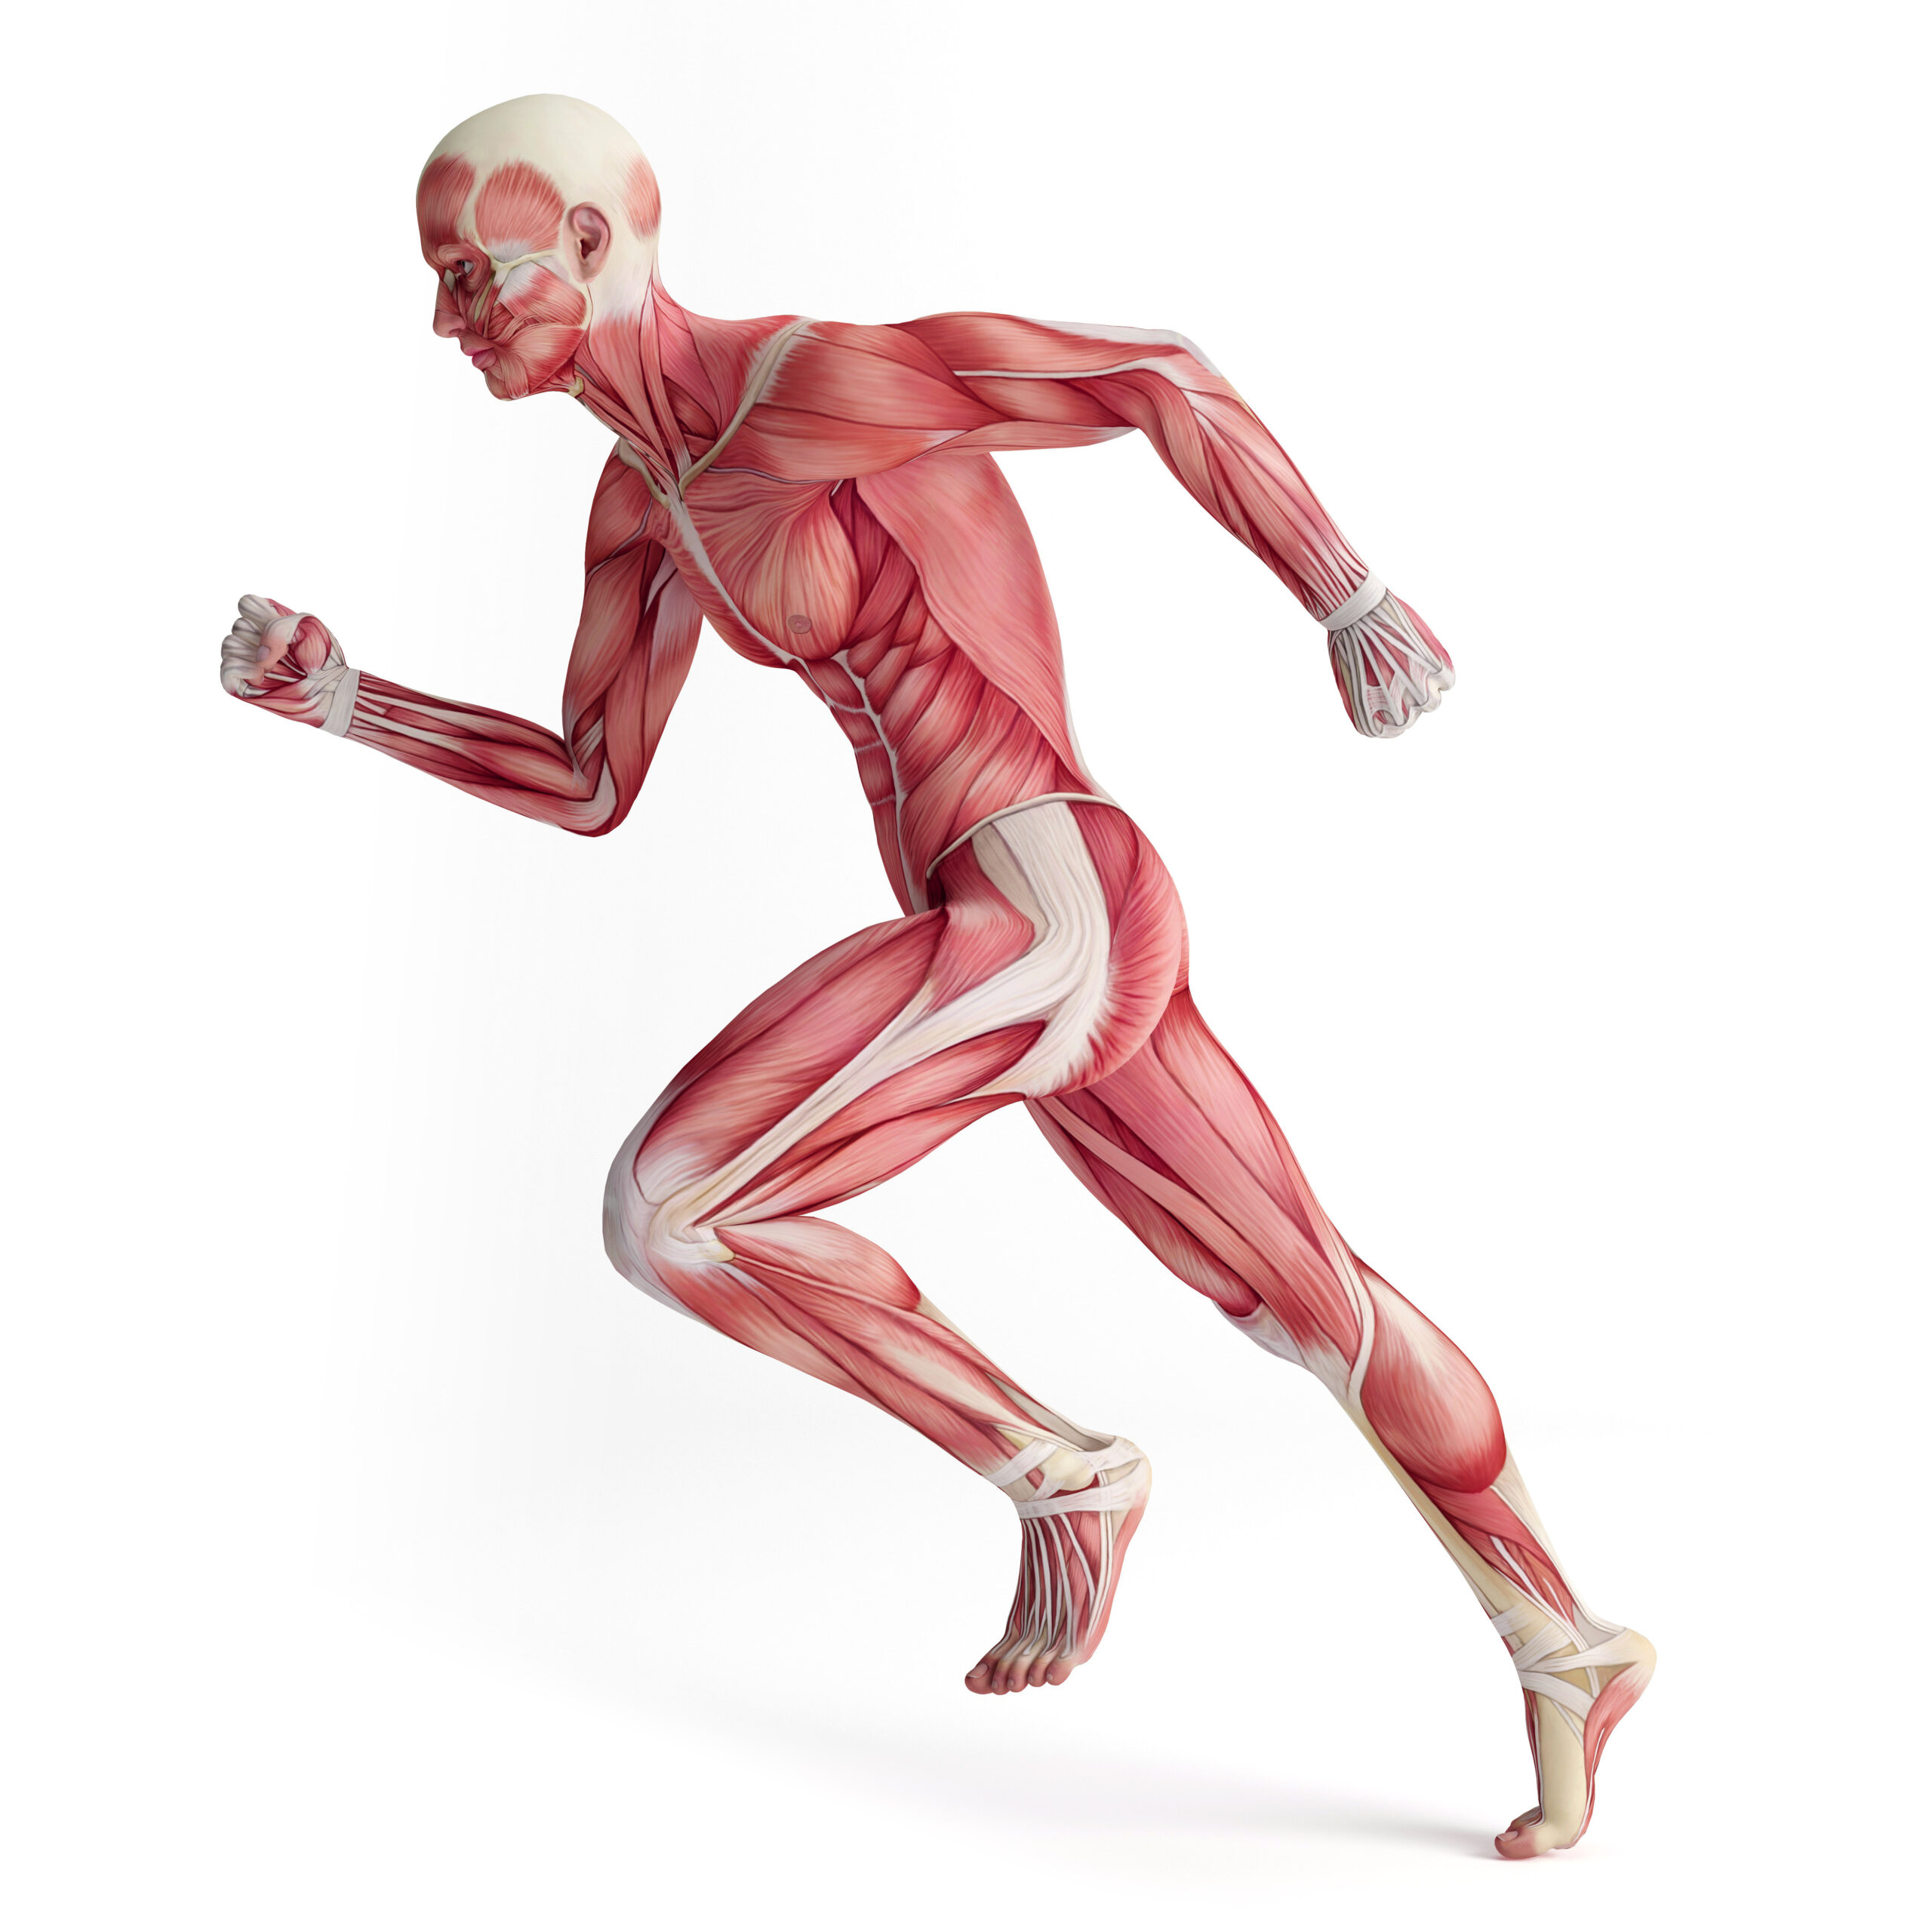 Energy Systems Used in Endurance Athletics